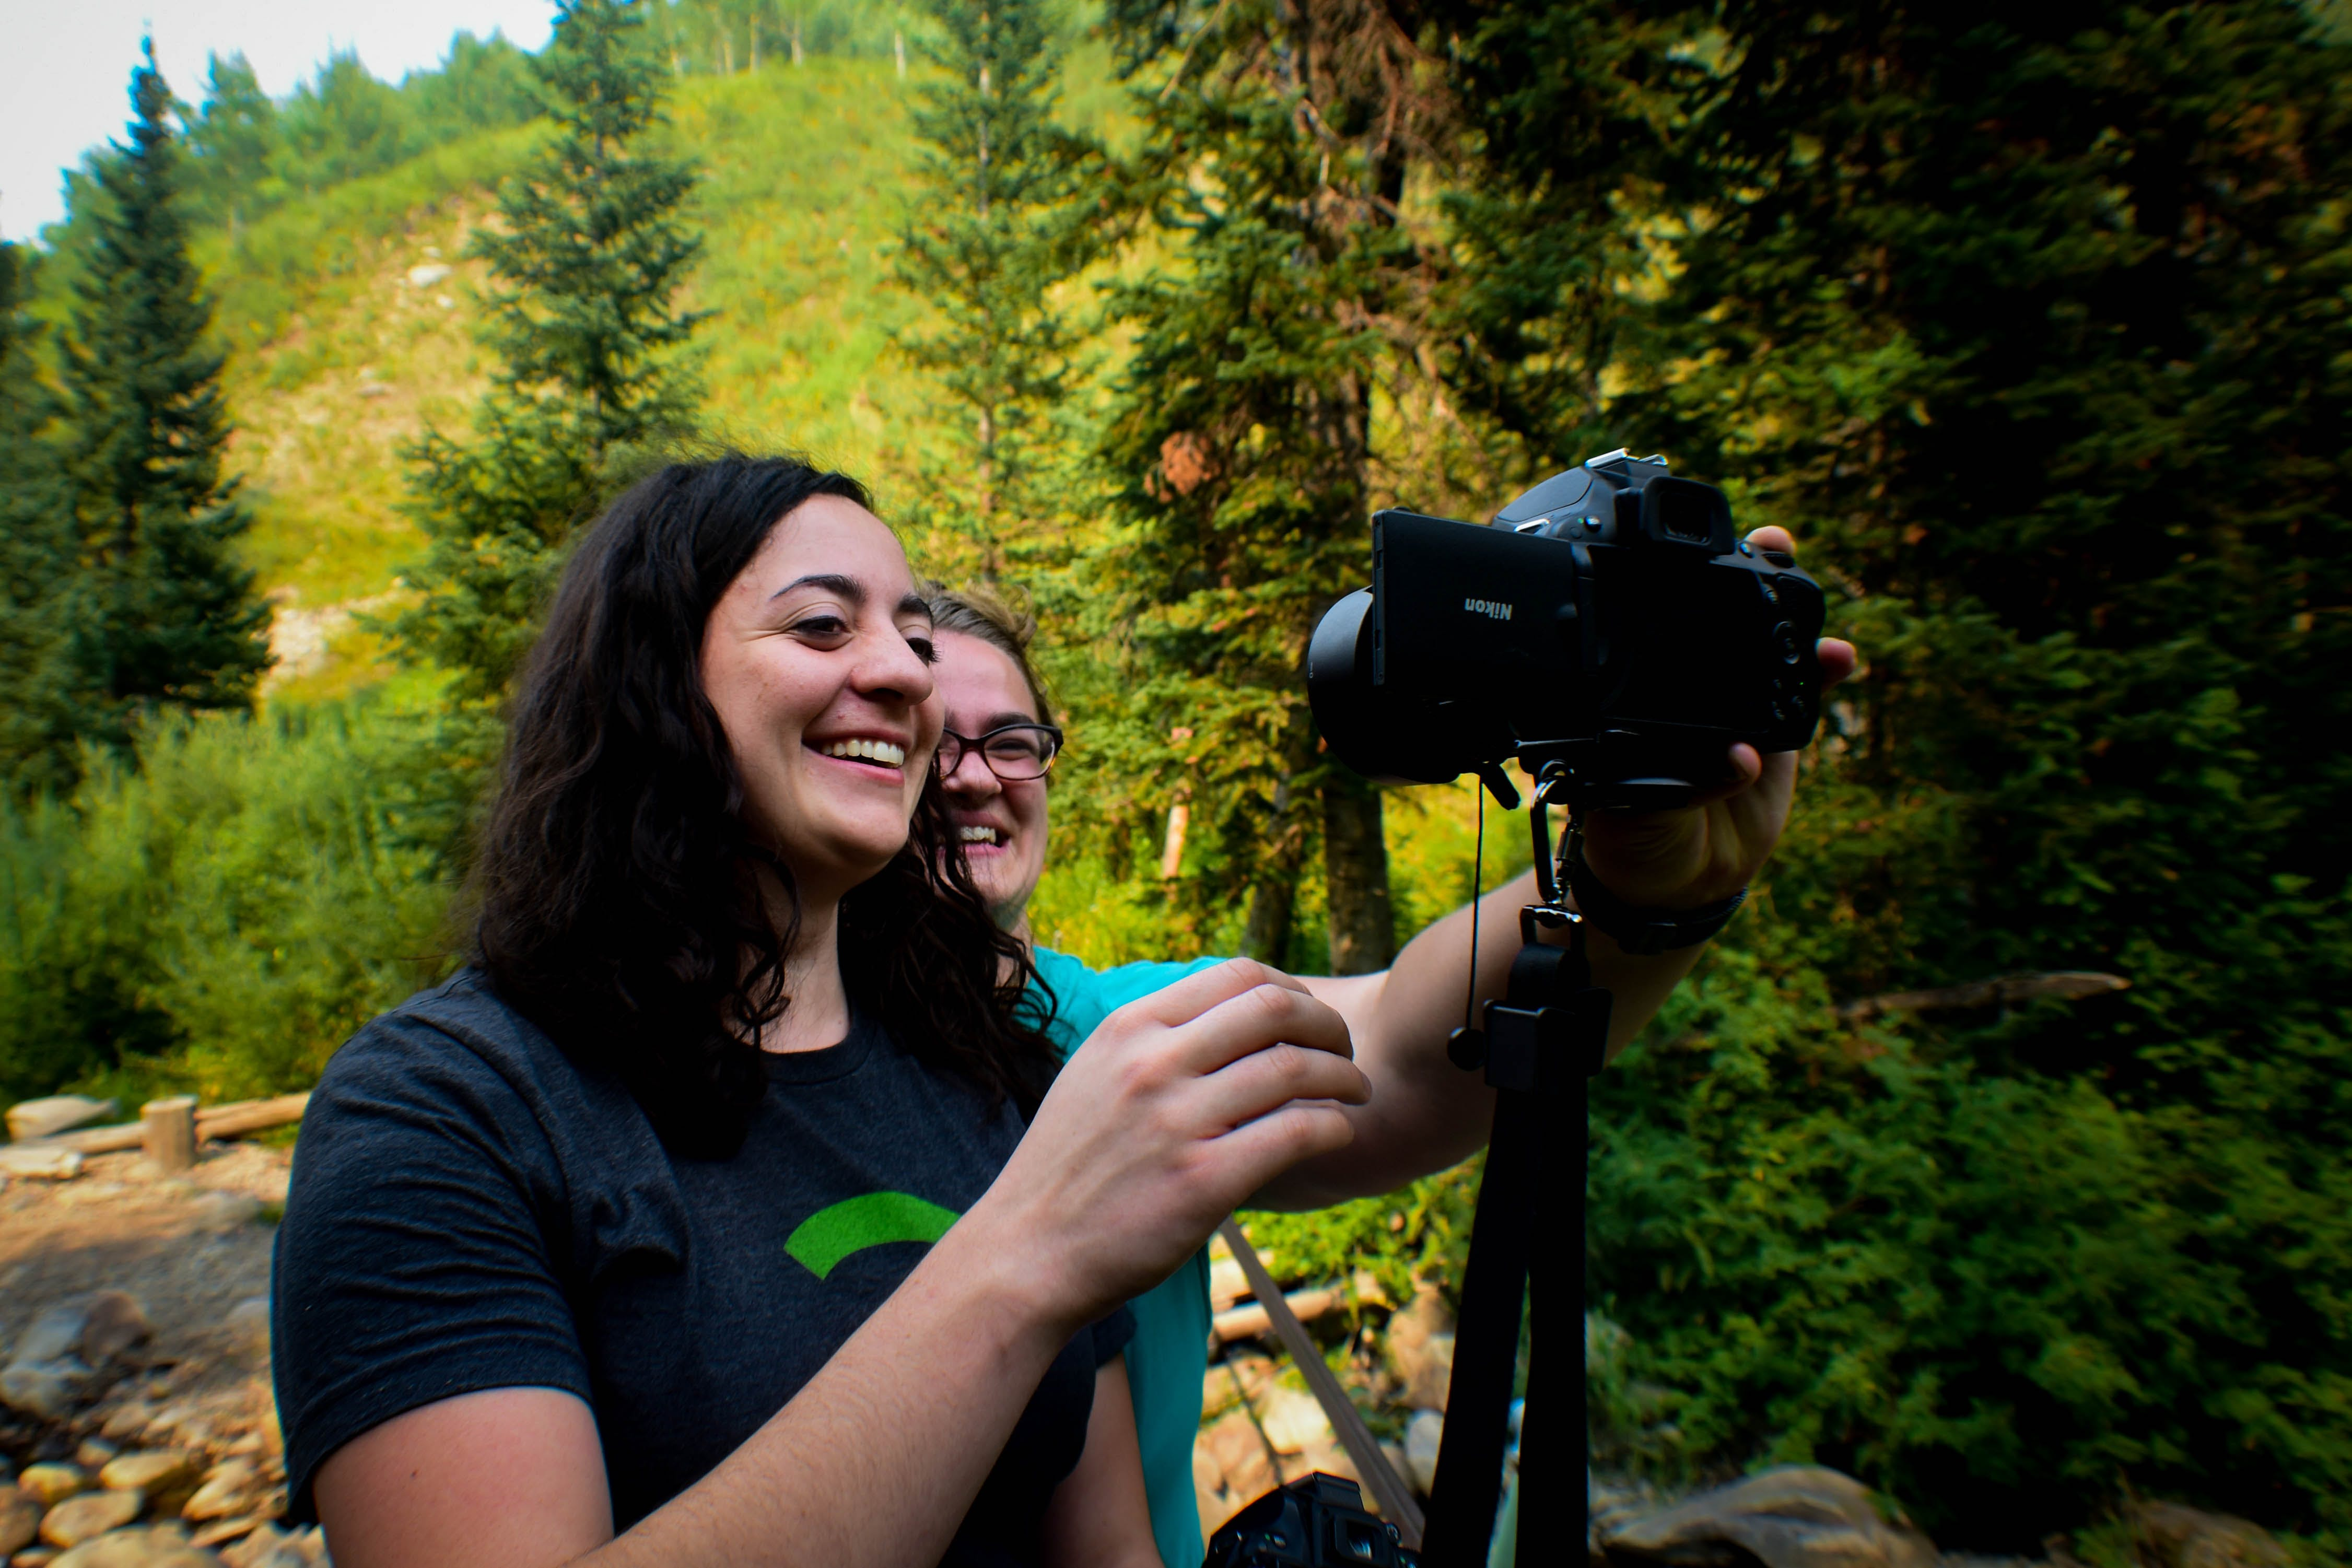 Two Woman Taking Selfie in Middle of Forest